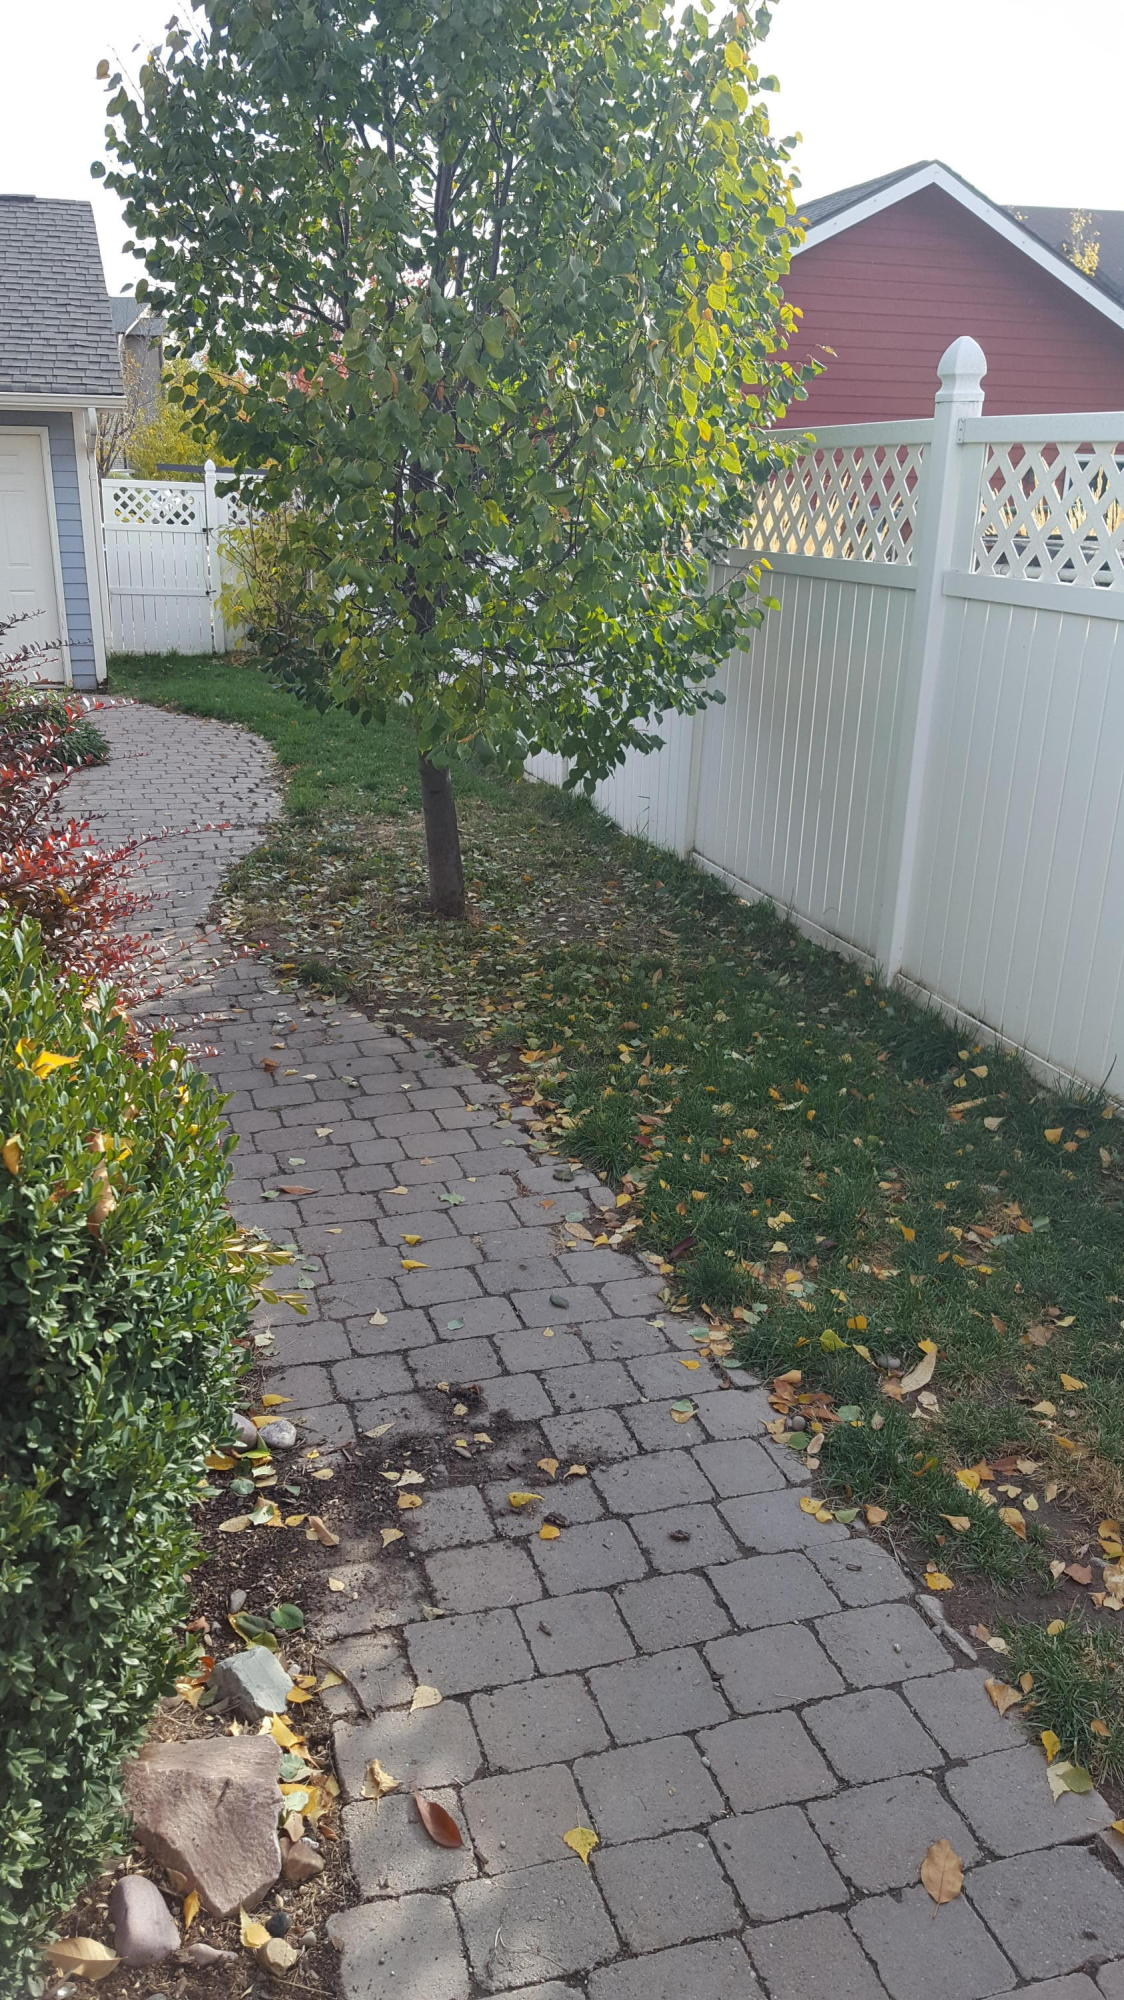 Paver walk from house to garage